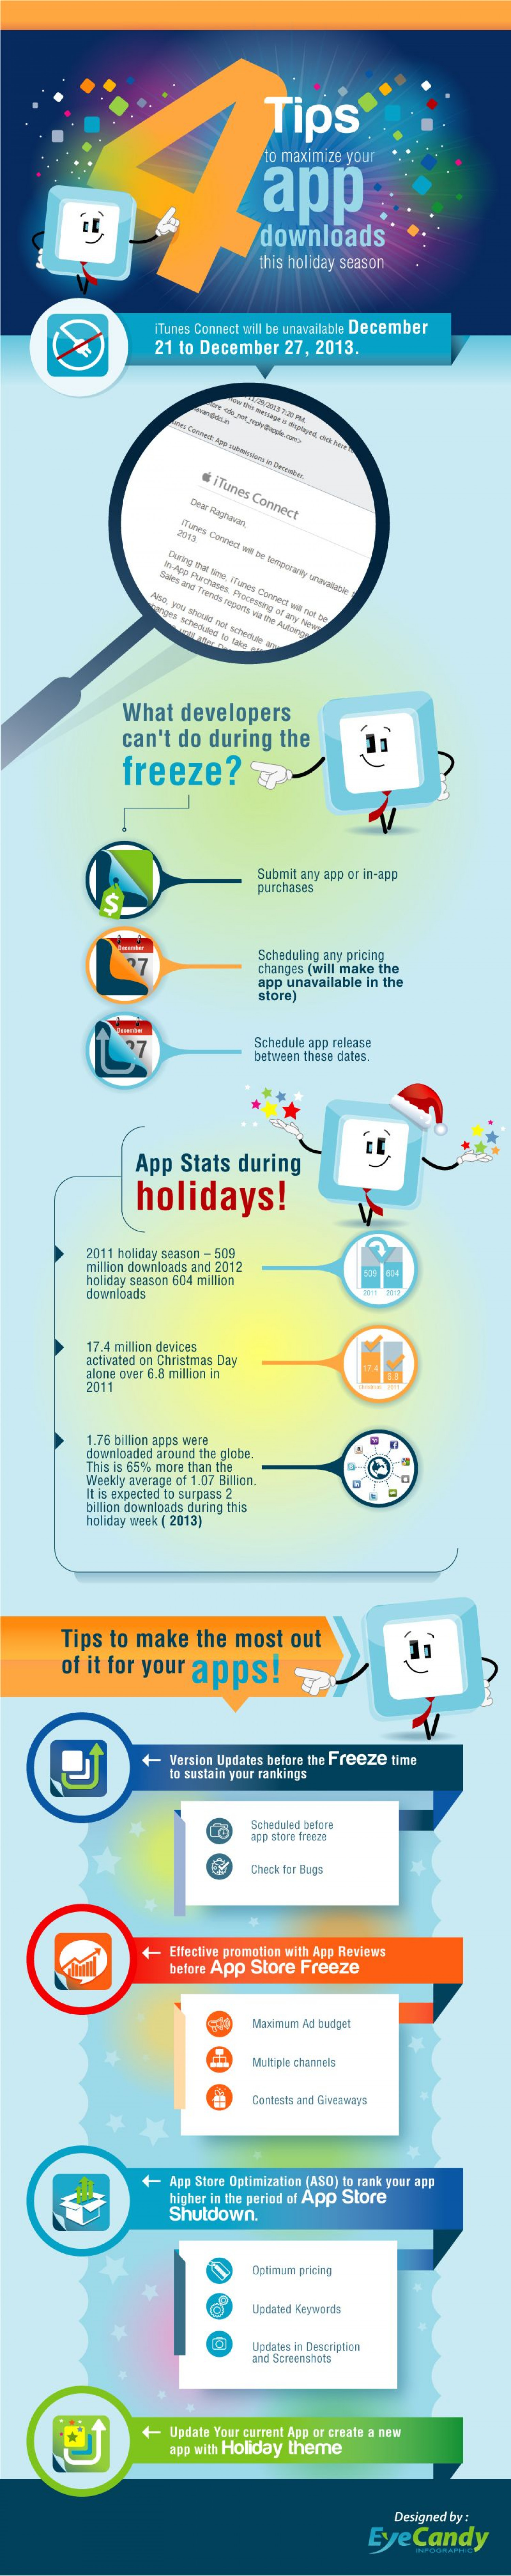 4 Tips to Maximize your App Downloads Infographic